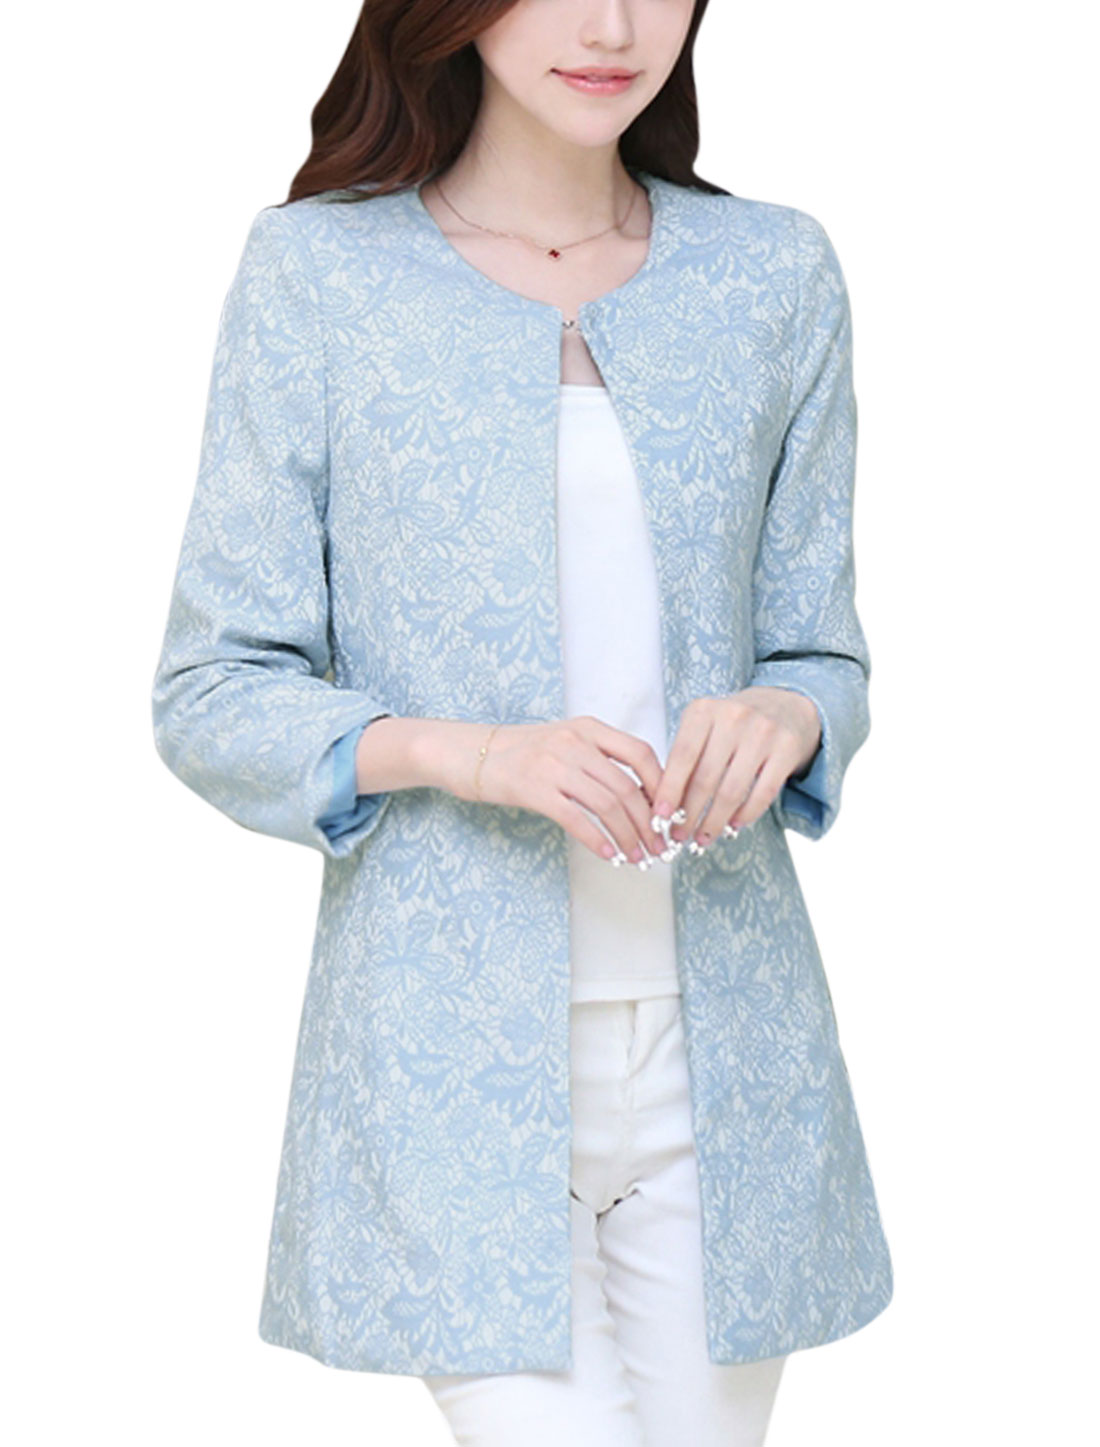 Ladies Baby Blue Floral Prints Design Hook Eye Closure Tunic Jacket XS